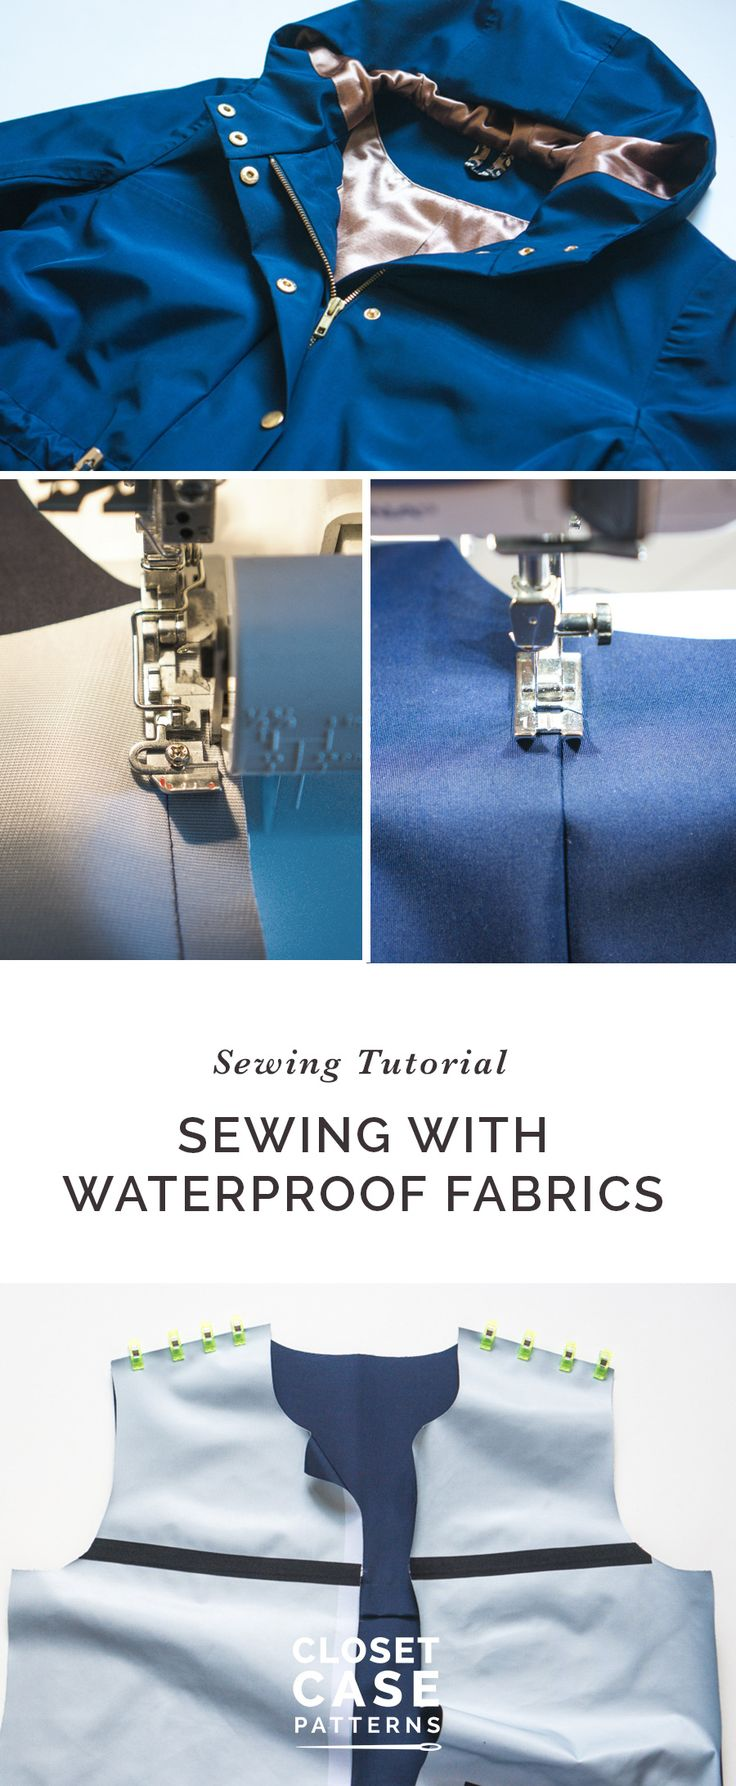 How to sew a waterproof raincoat using waterproof fabric and seam sealing tape! // Closet Case Patterns